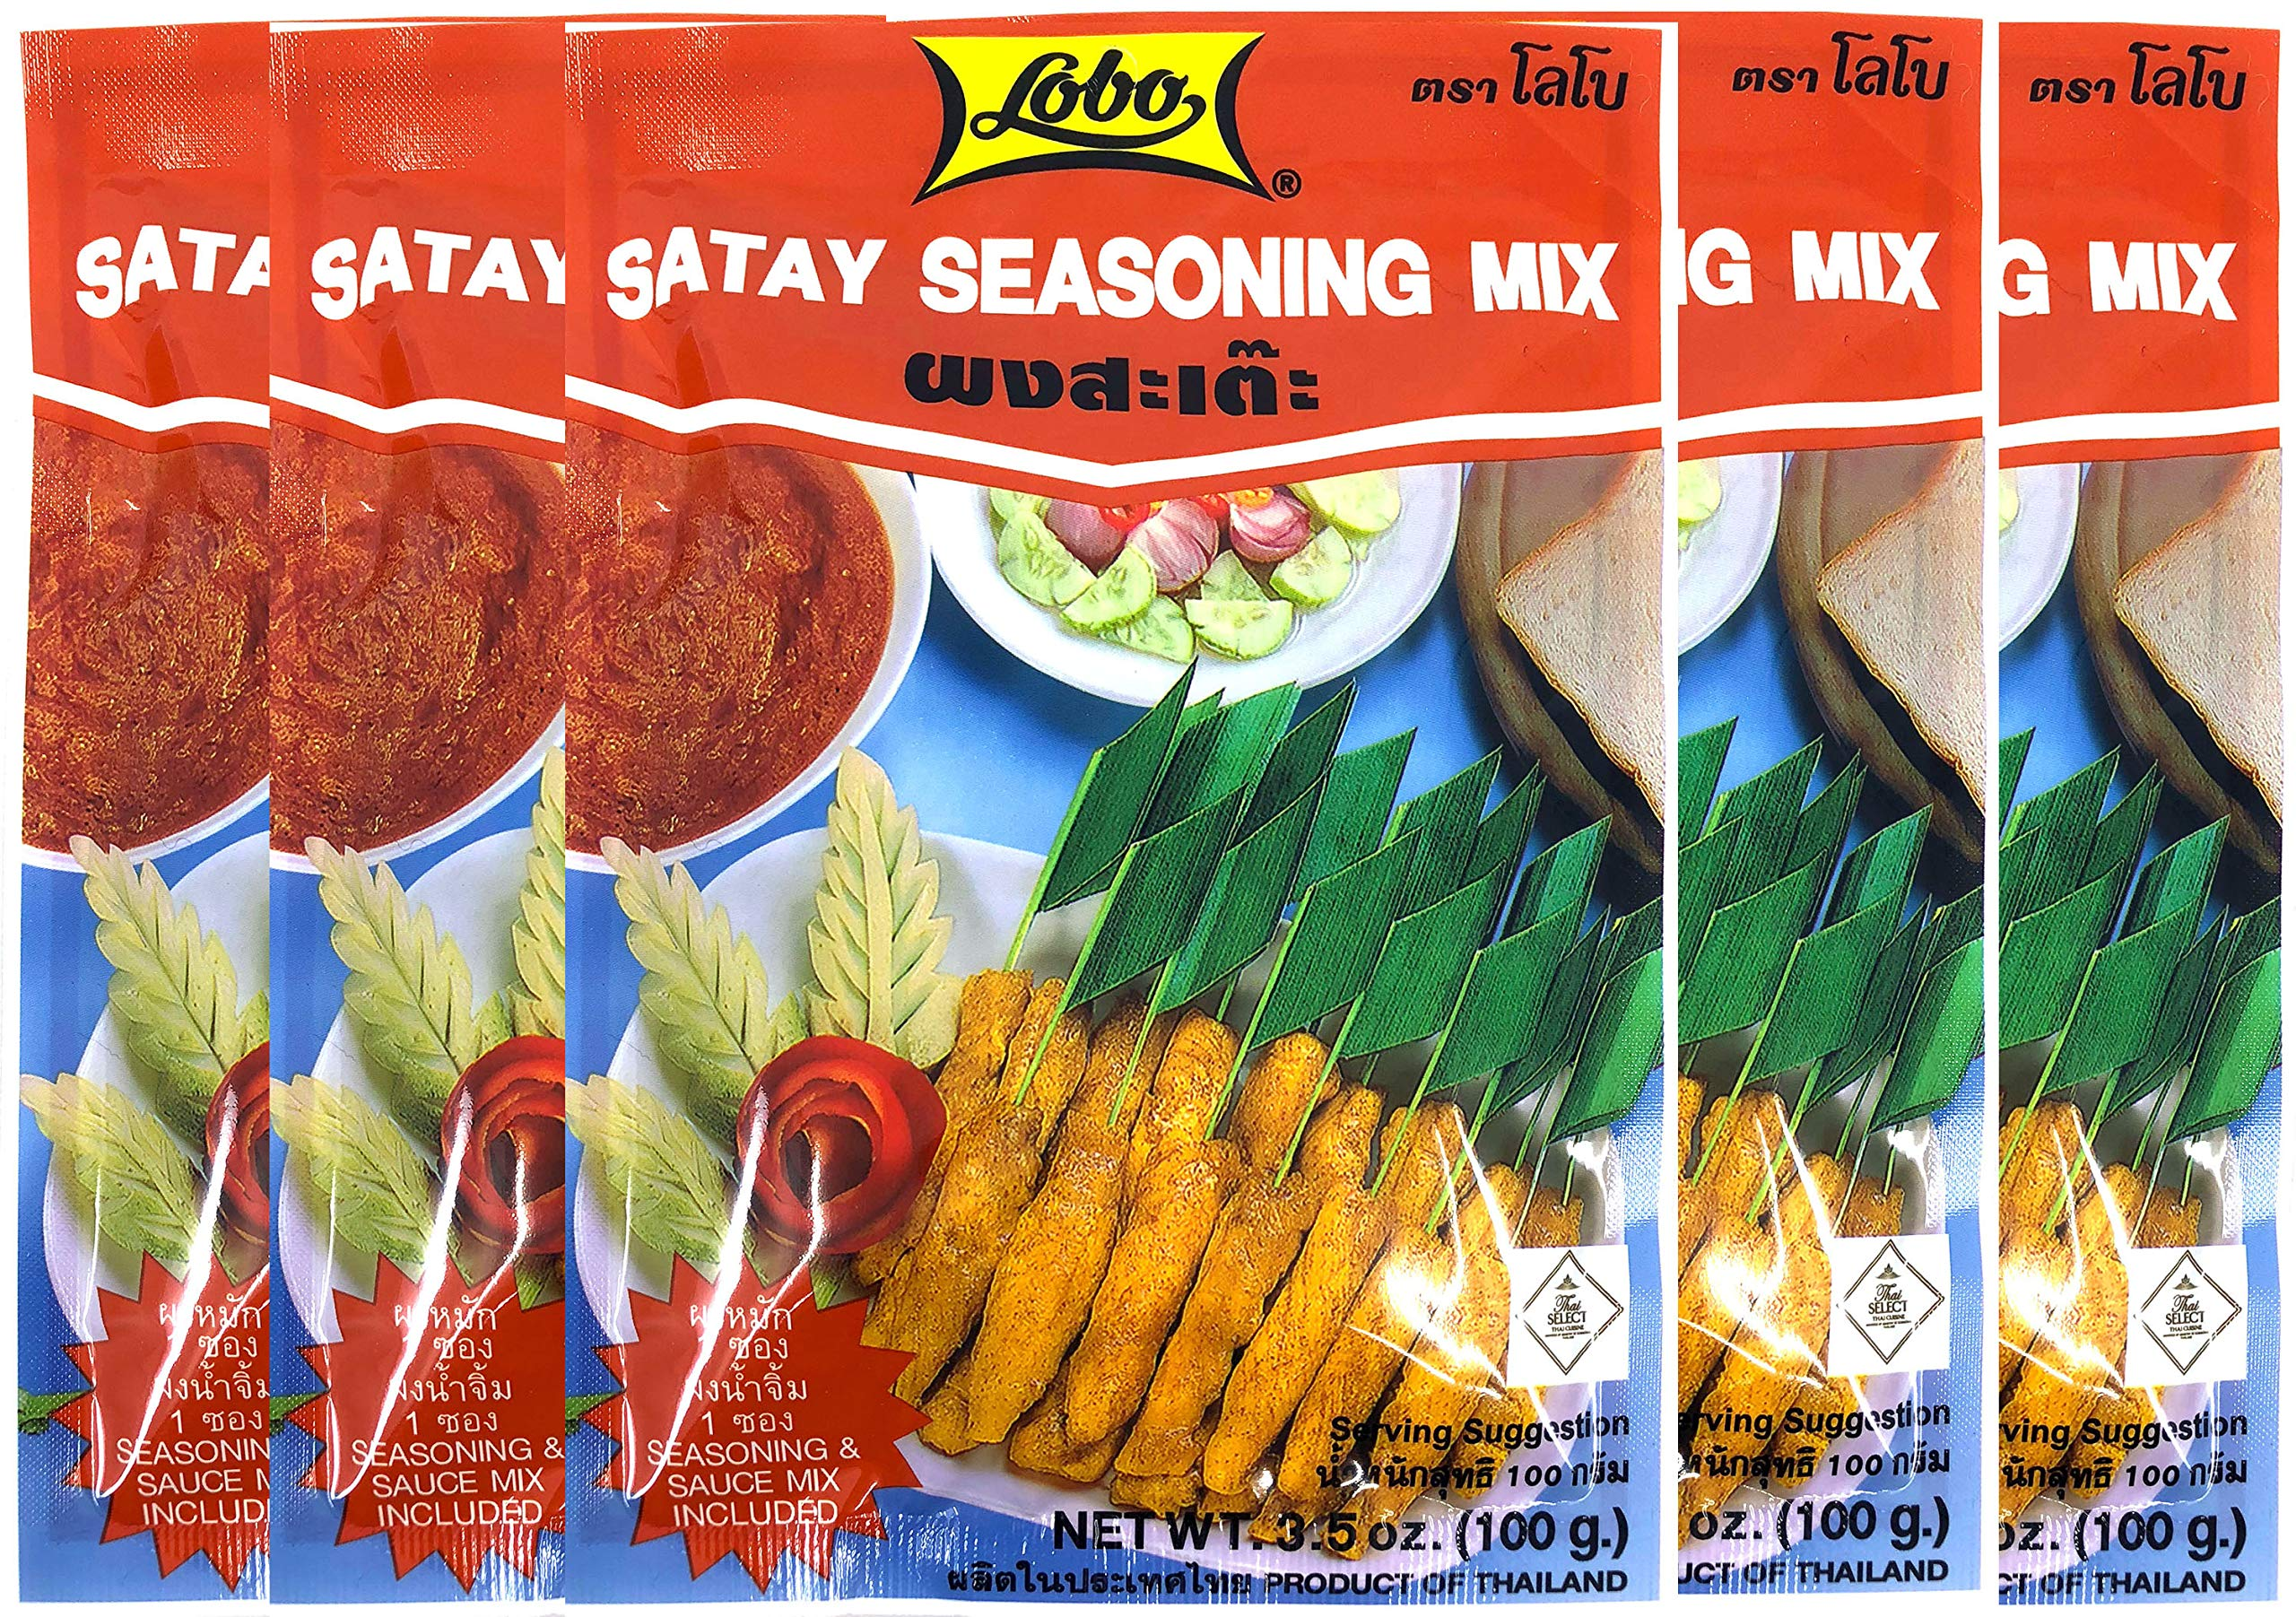 Lobo Brand Thai Satay Mix (Peanut Sauce) 3.5 Oz Each - 5 Packs